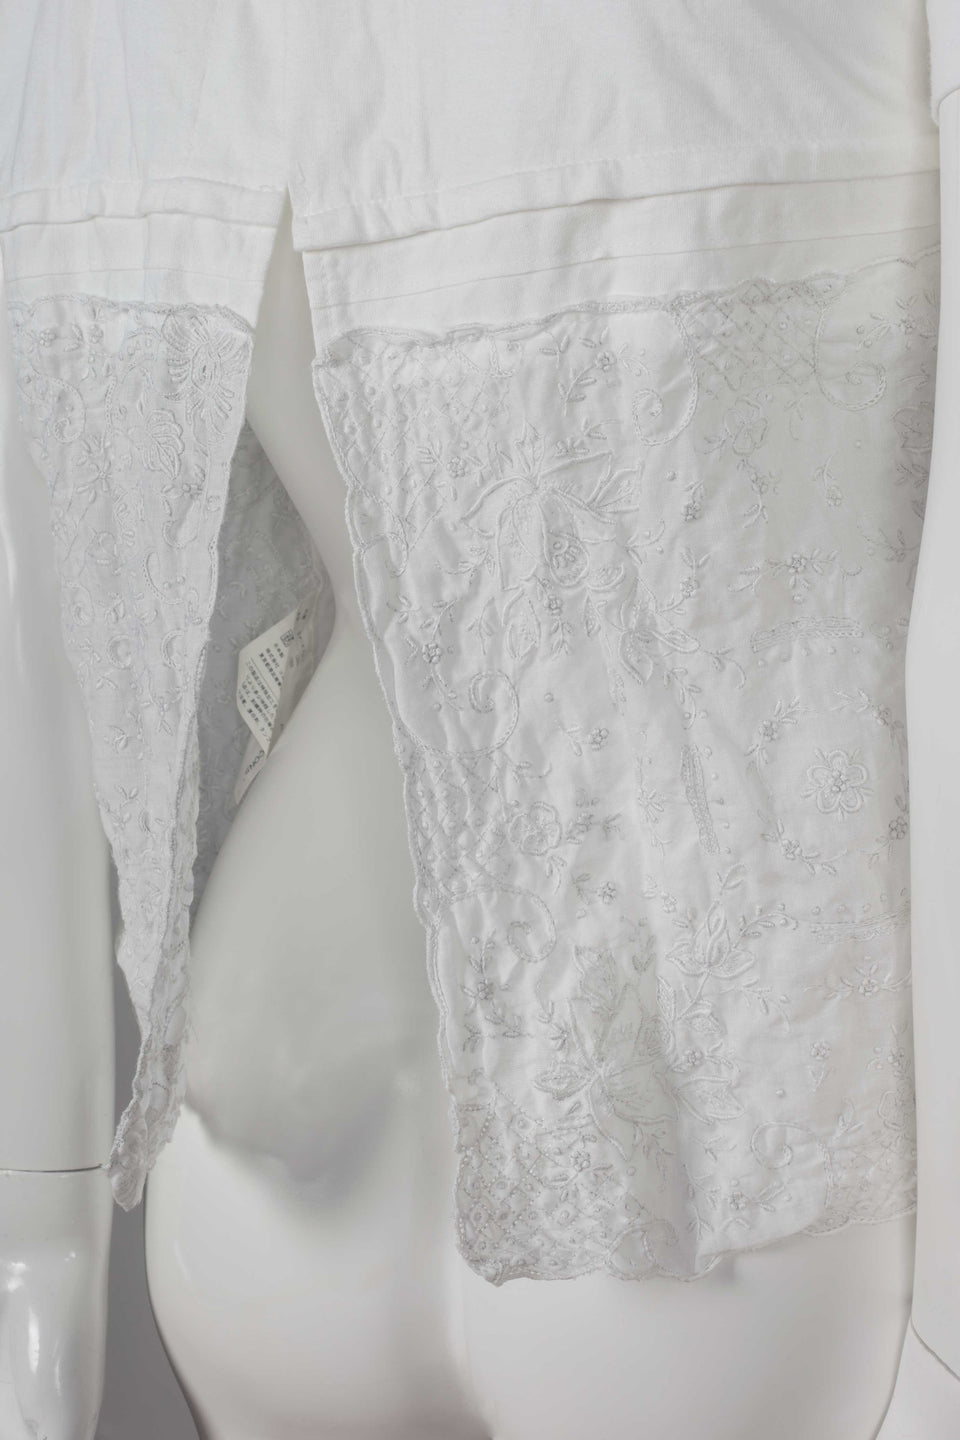 Comme des Garçons Tao, a white cotton t-shirt with embroidered linen lower that looks like lace.